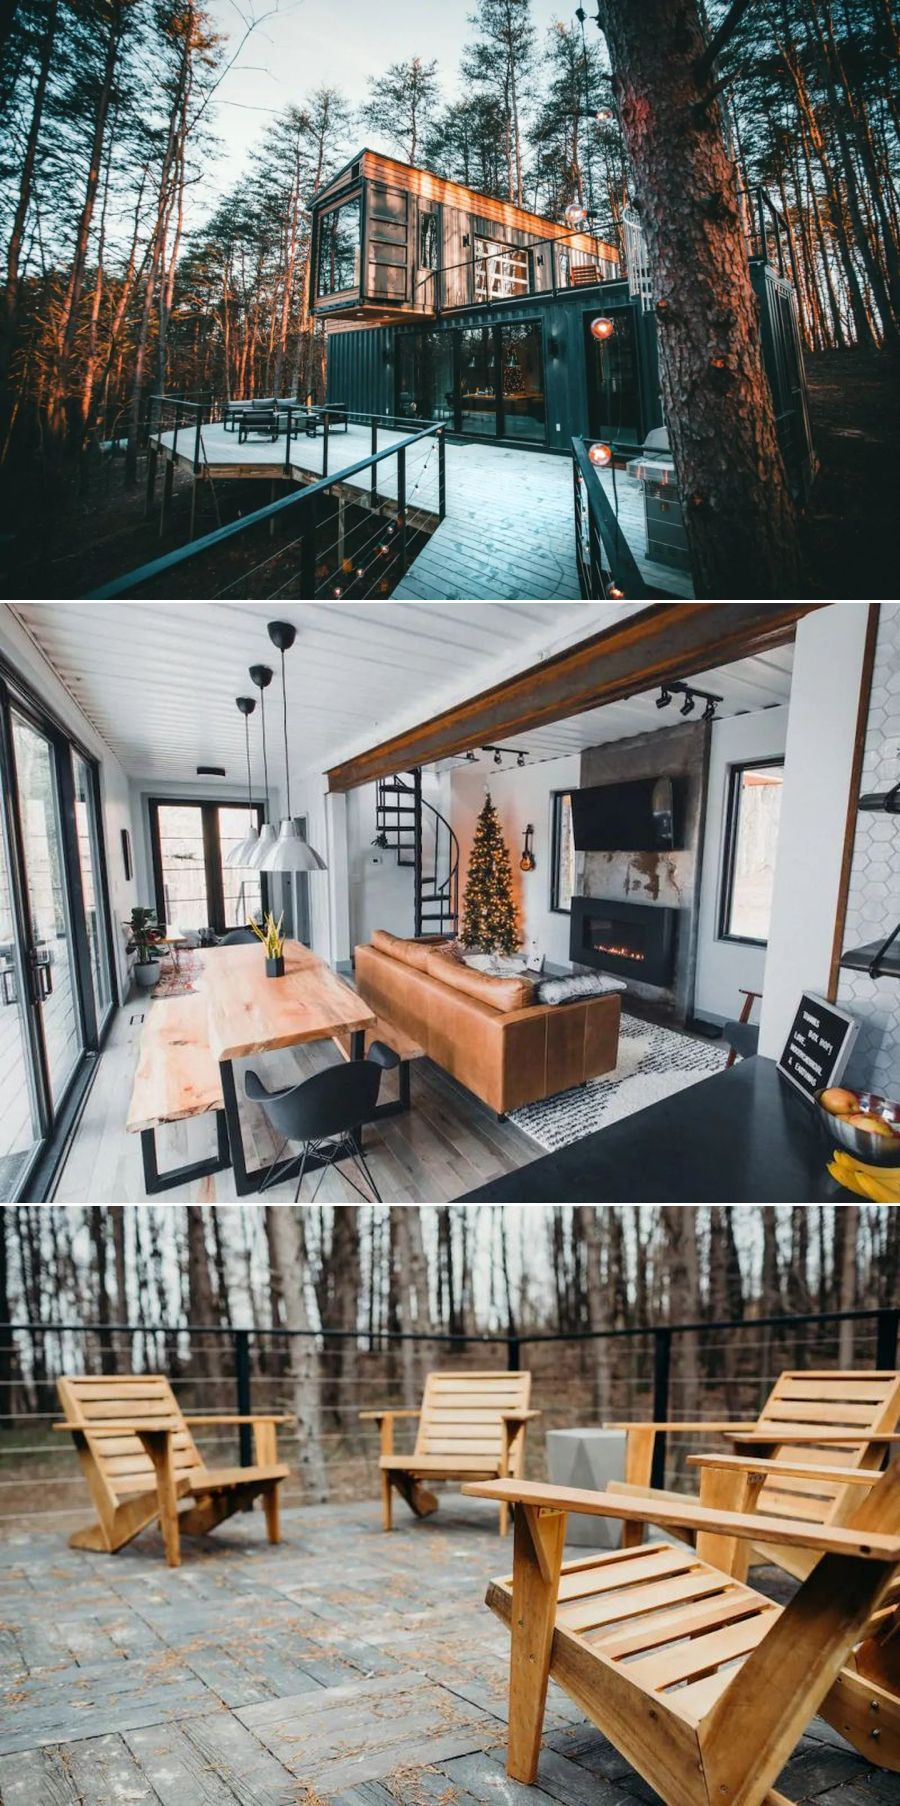 This Shipping Container Home in Ohio is Available for Rent on Airbnb